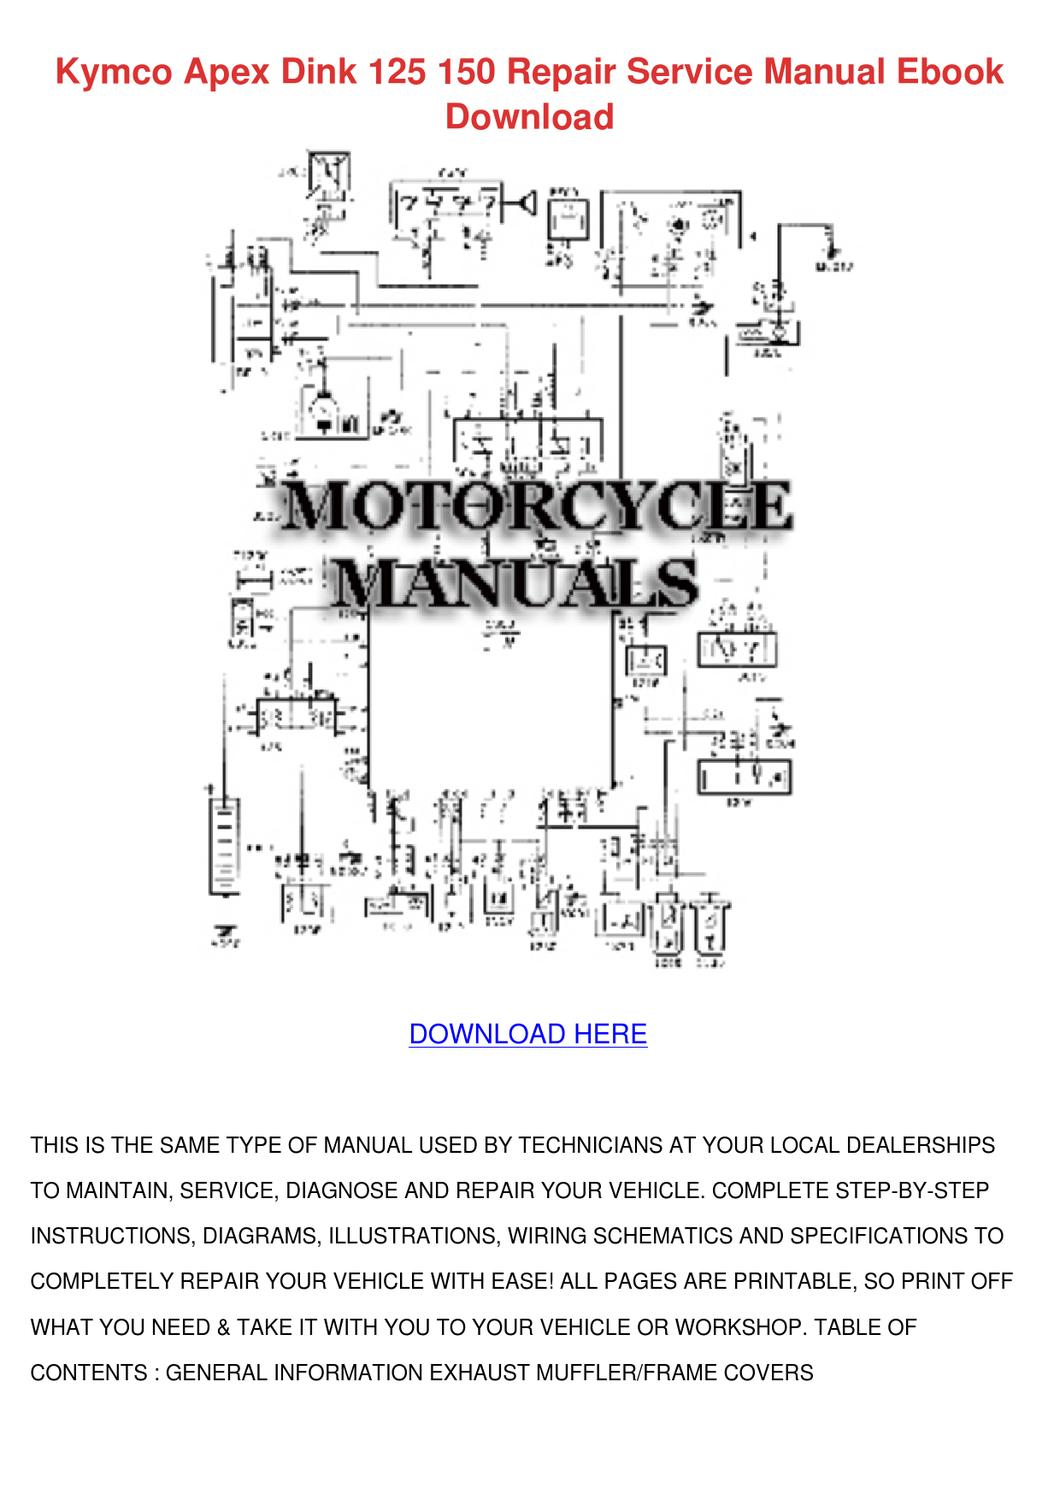 Kymco Apex Dink 125 150 Repair Service Manual by HannahCoble - issuu